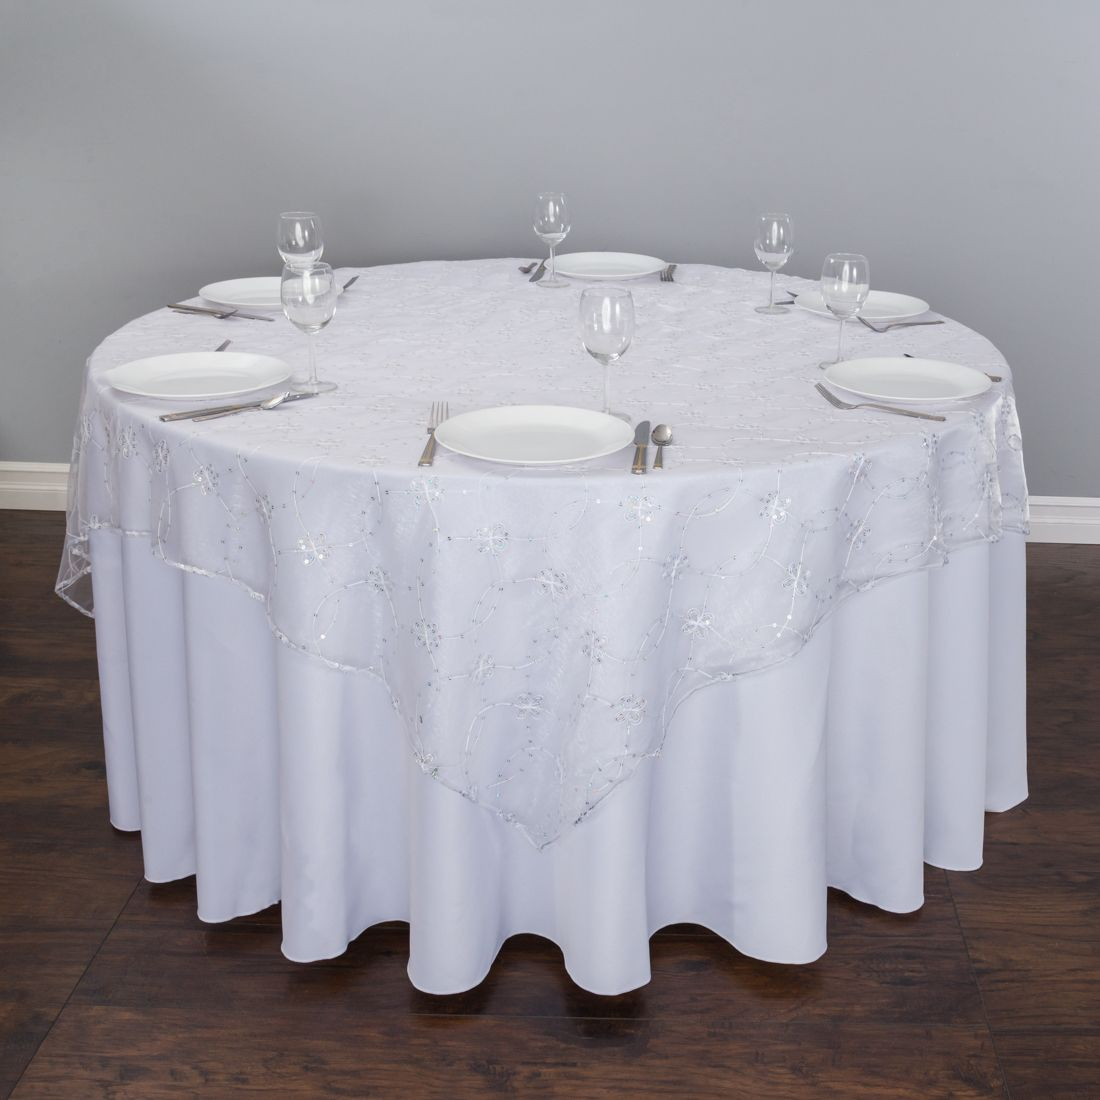 Sheer Table Toppers Feature Sequin Embellished Embroidered Flowers Perfect For Weddings Quinceaneras Sweet 16 Parties Baby Showers And Other Elegant